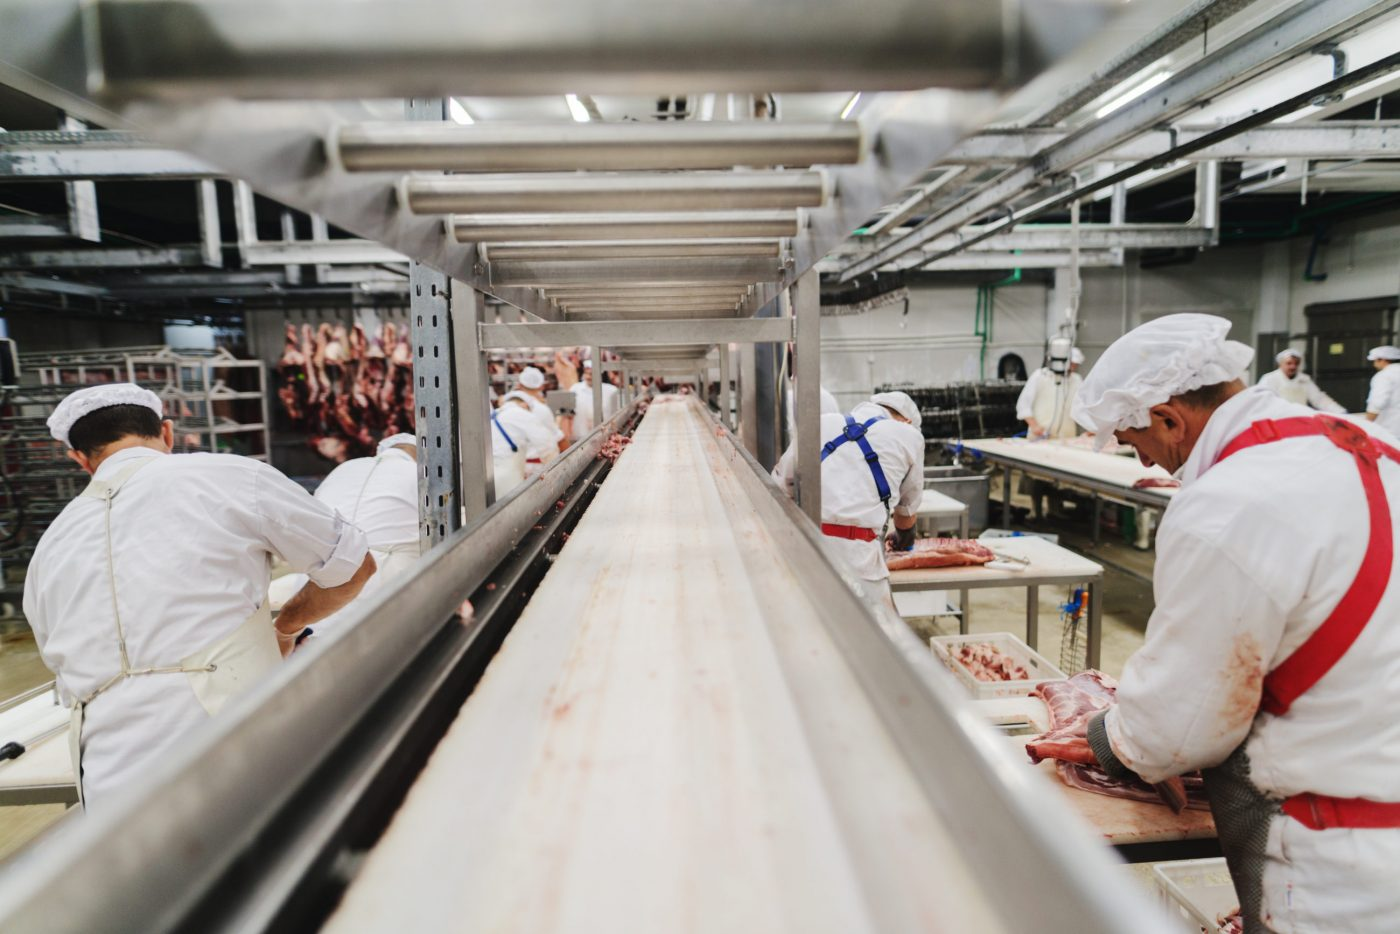 Workers standing in a meat processing facility